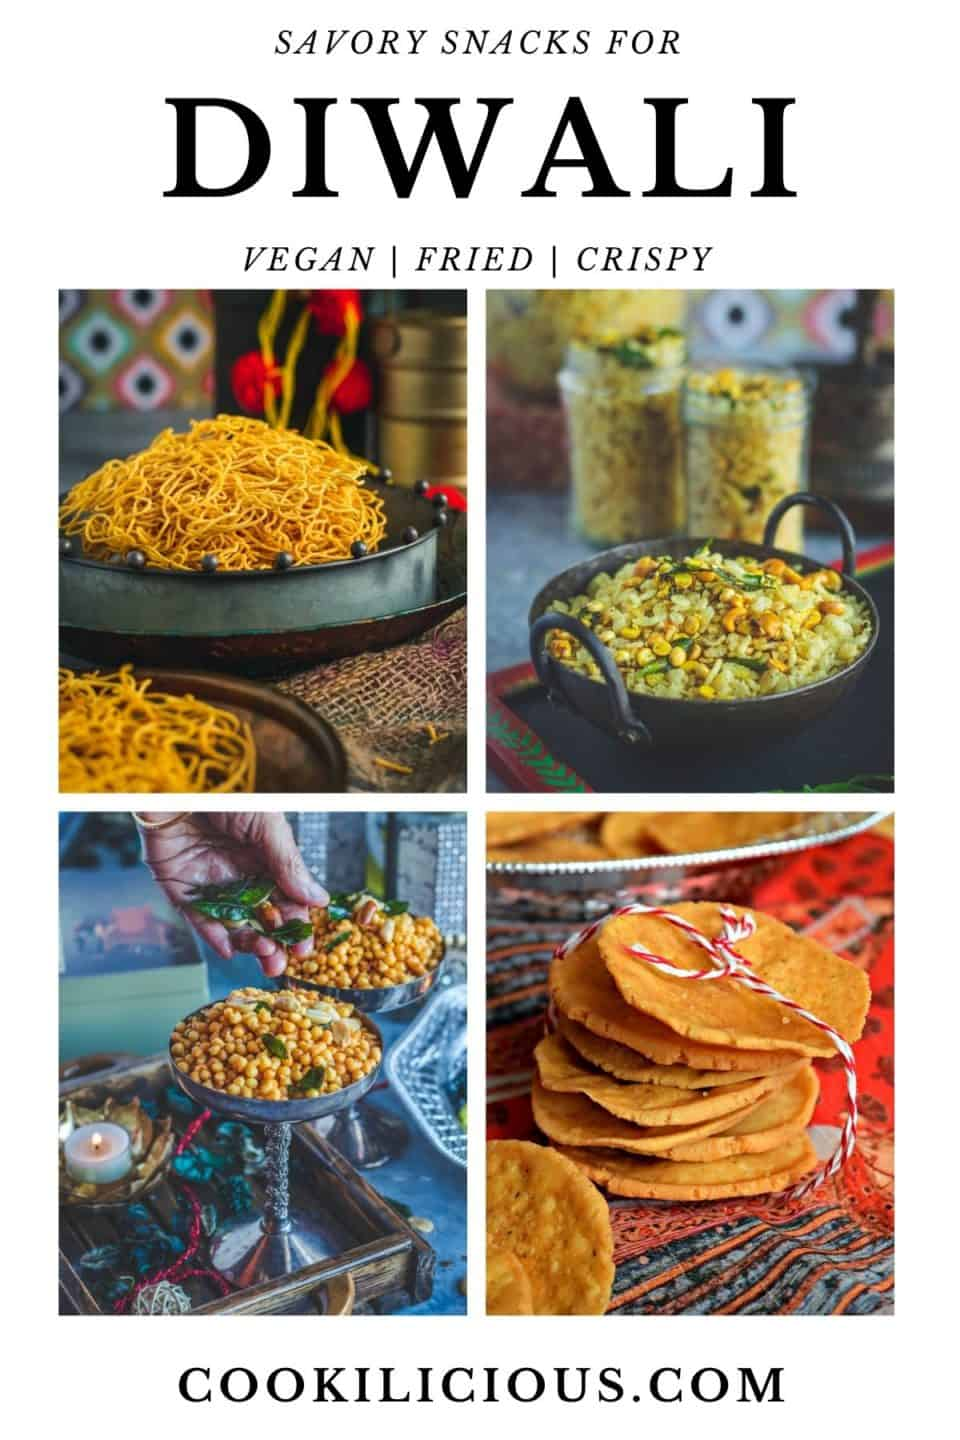 4 image collage of Indian Diwali Food Snacks with text at the top and bottom